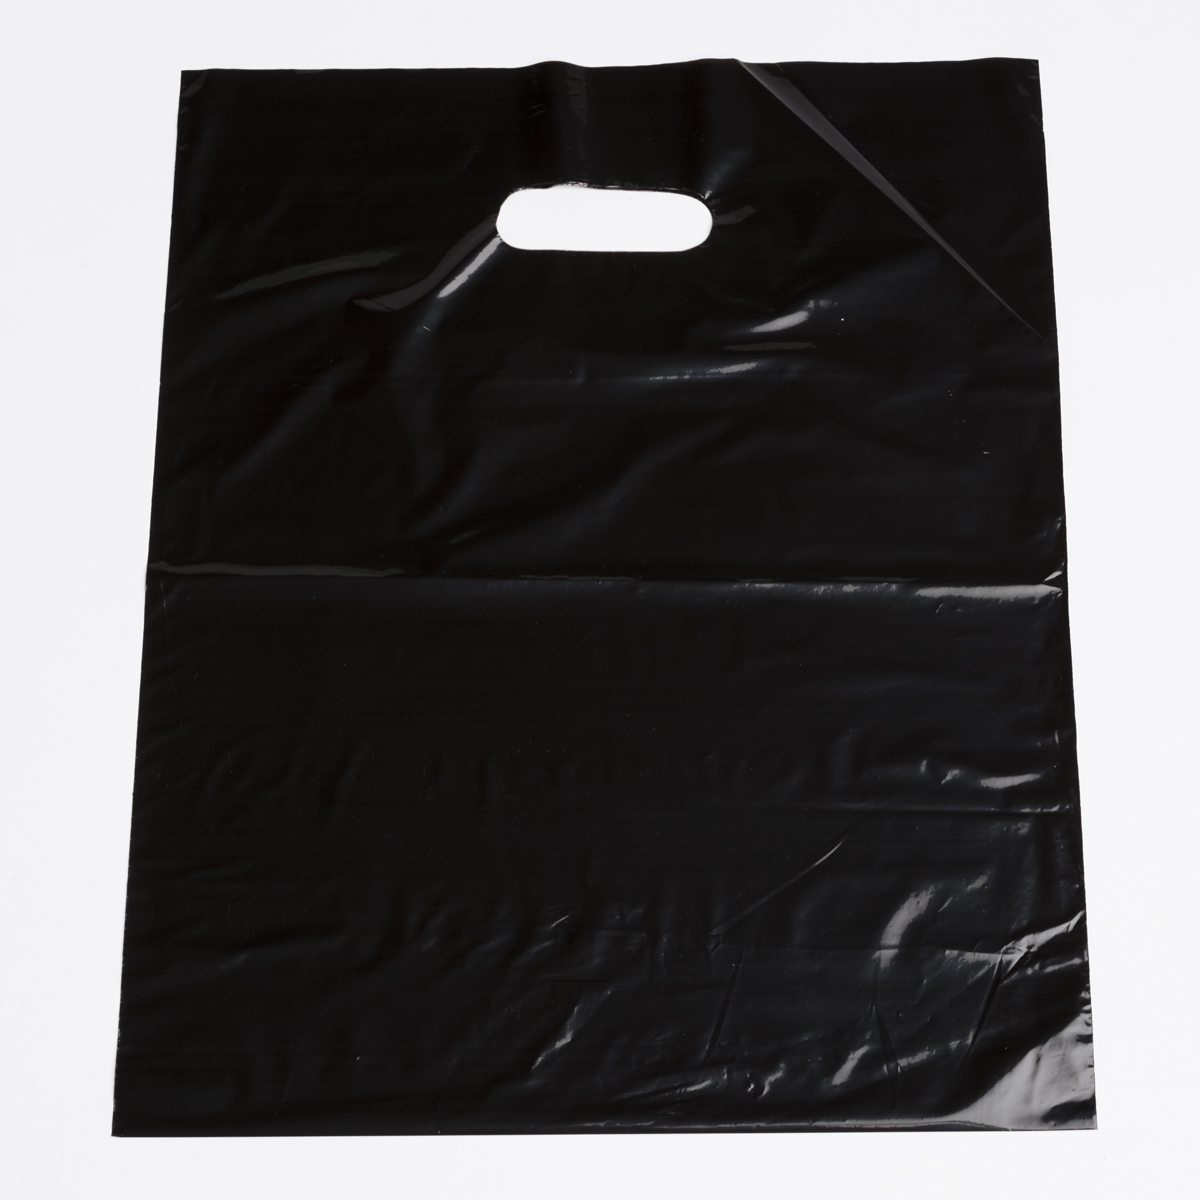 Medium Black Low Density Plastic Bag